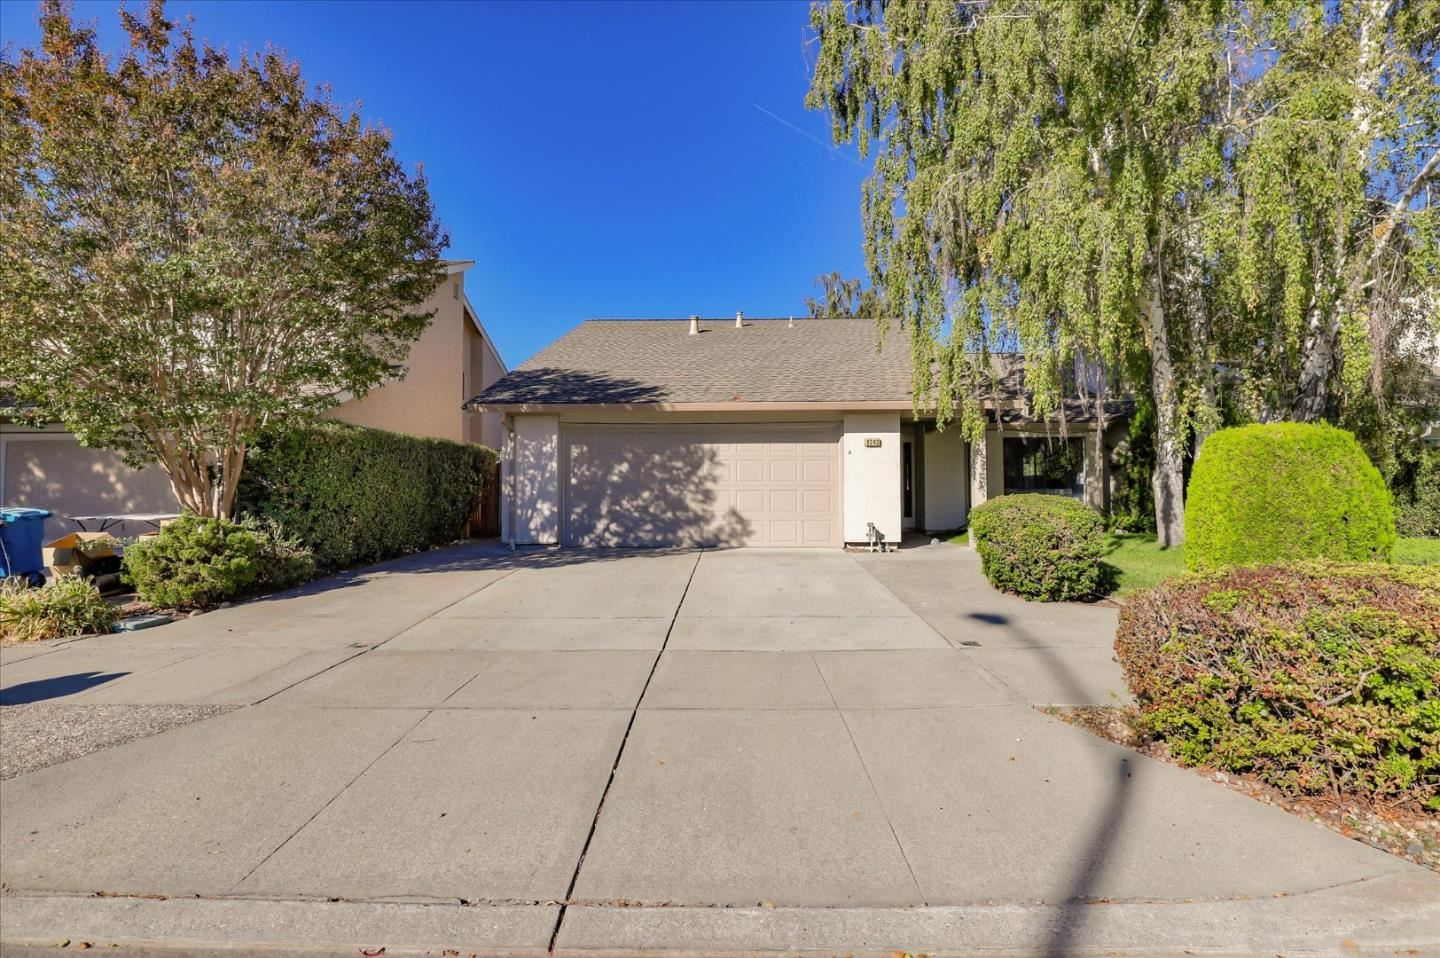 Photo for 9243 Solana DR, GILROY, CA 95020 (MLS # ML81815752)